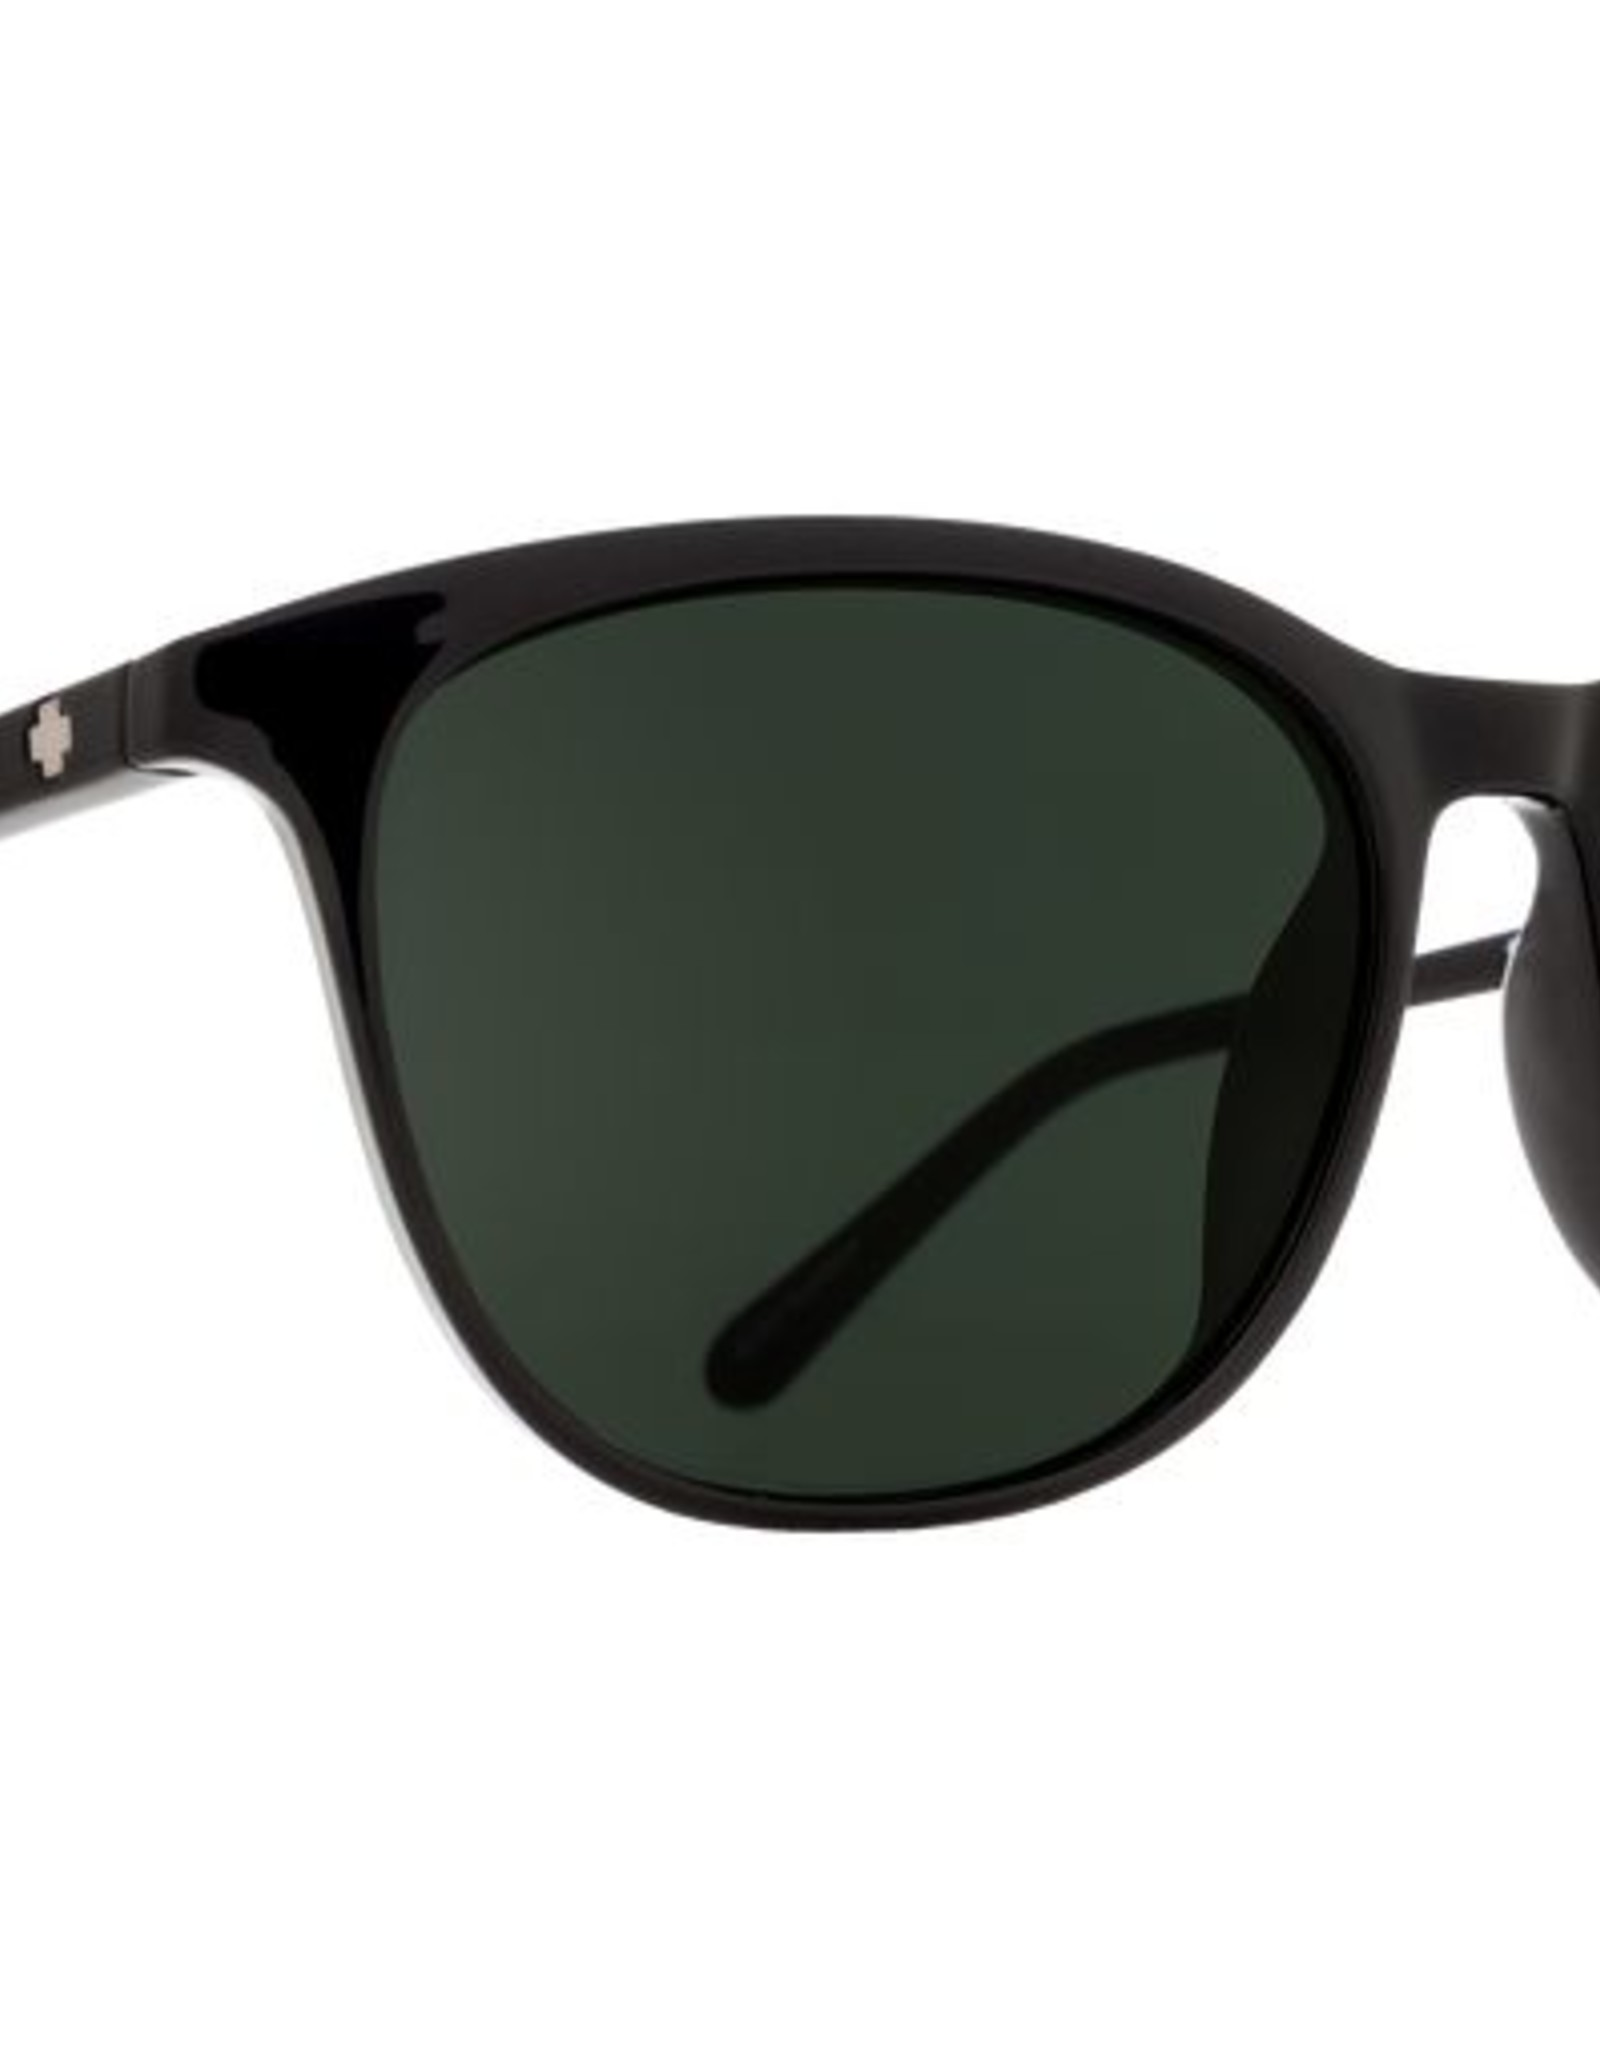 SPY Spy - CAMEO - Black w/ POLAR Grey/Green